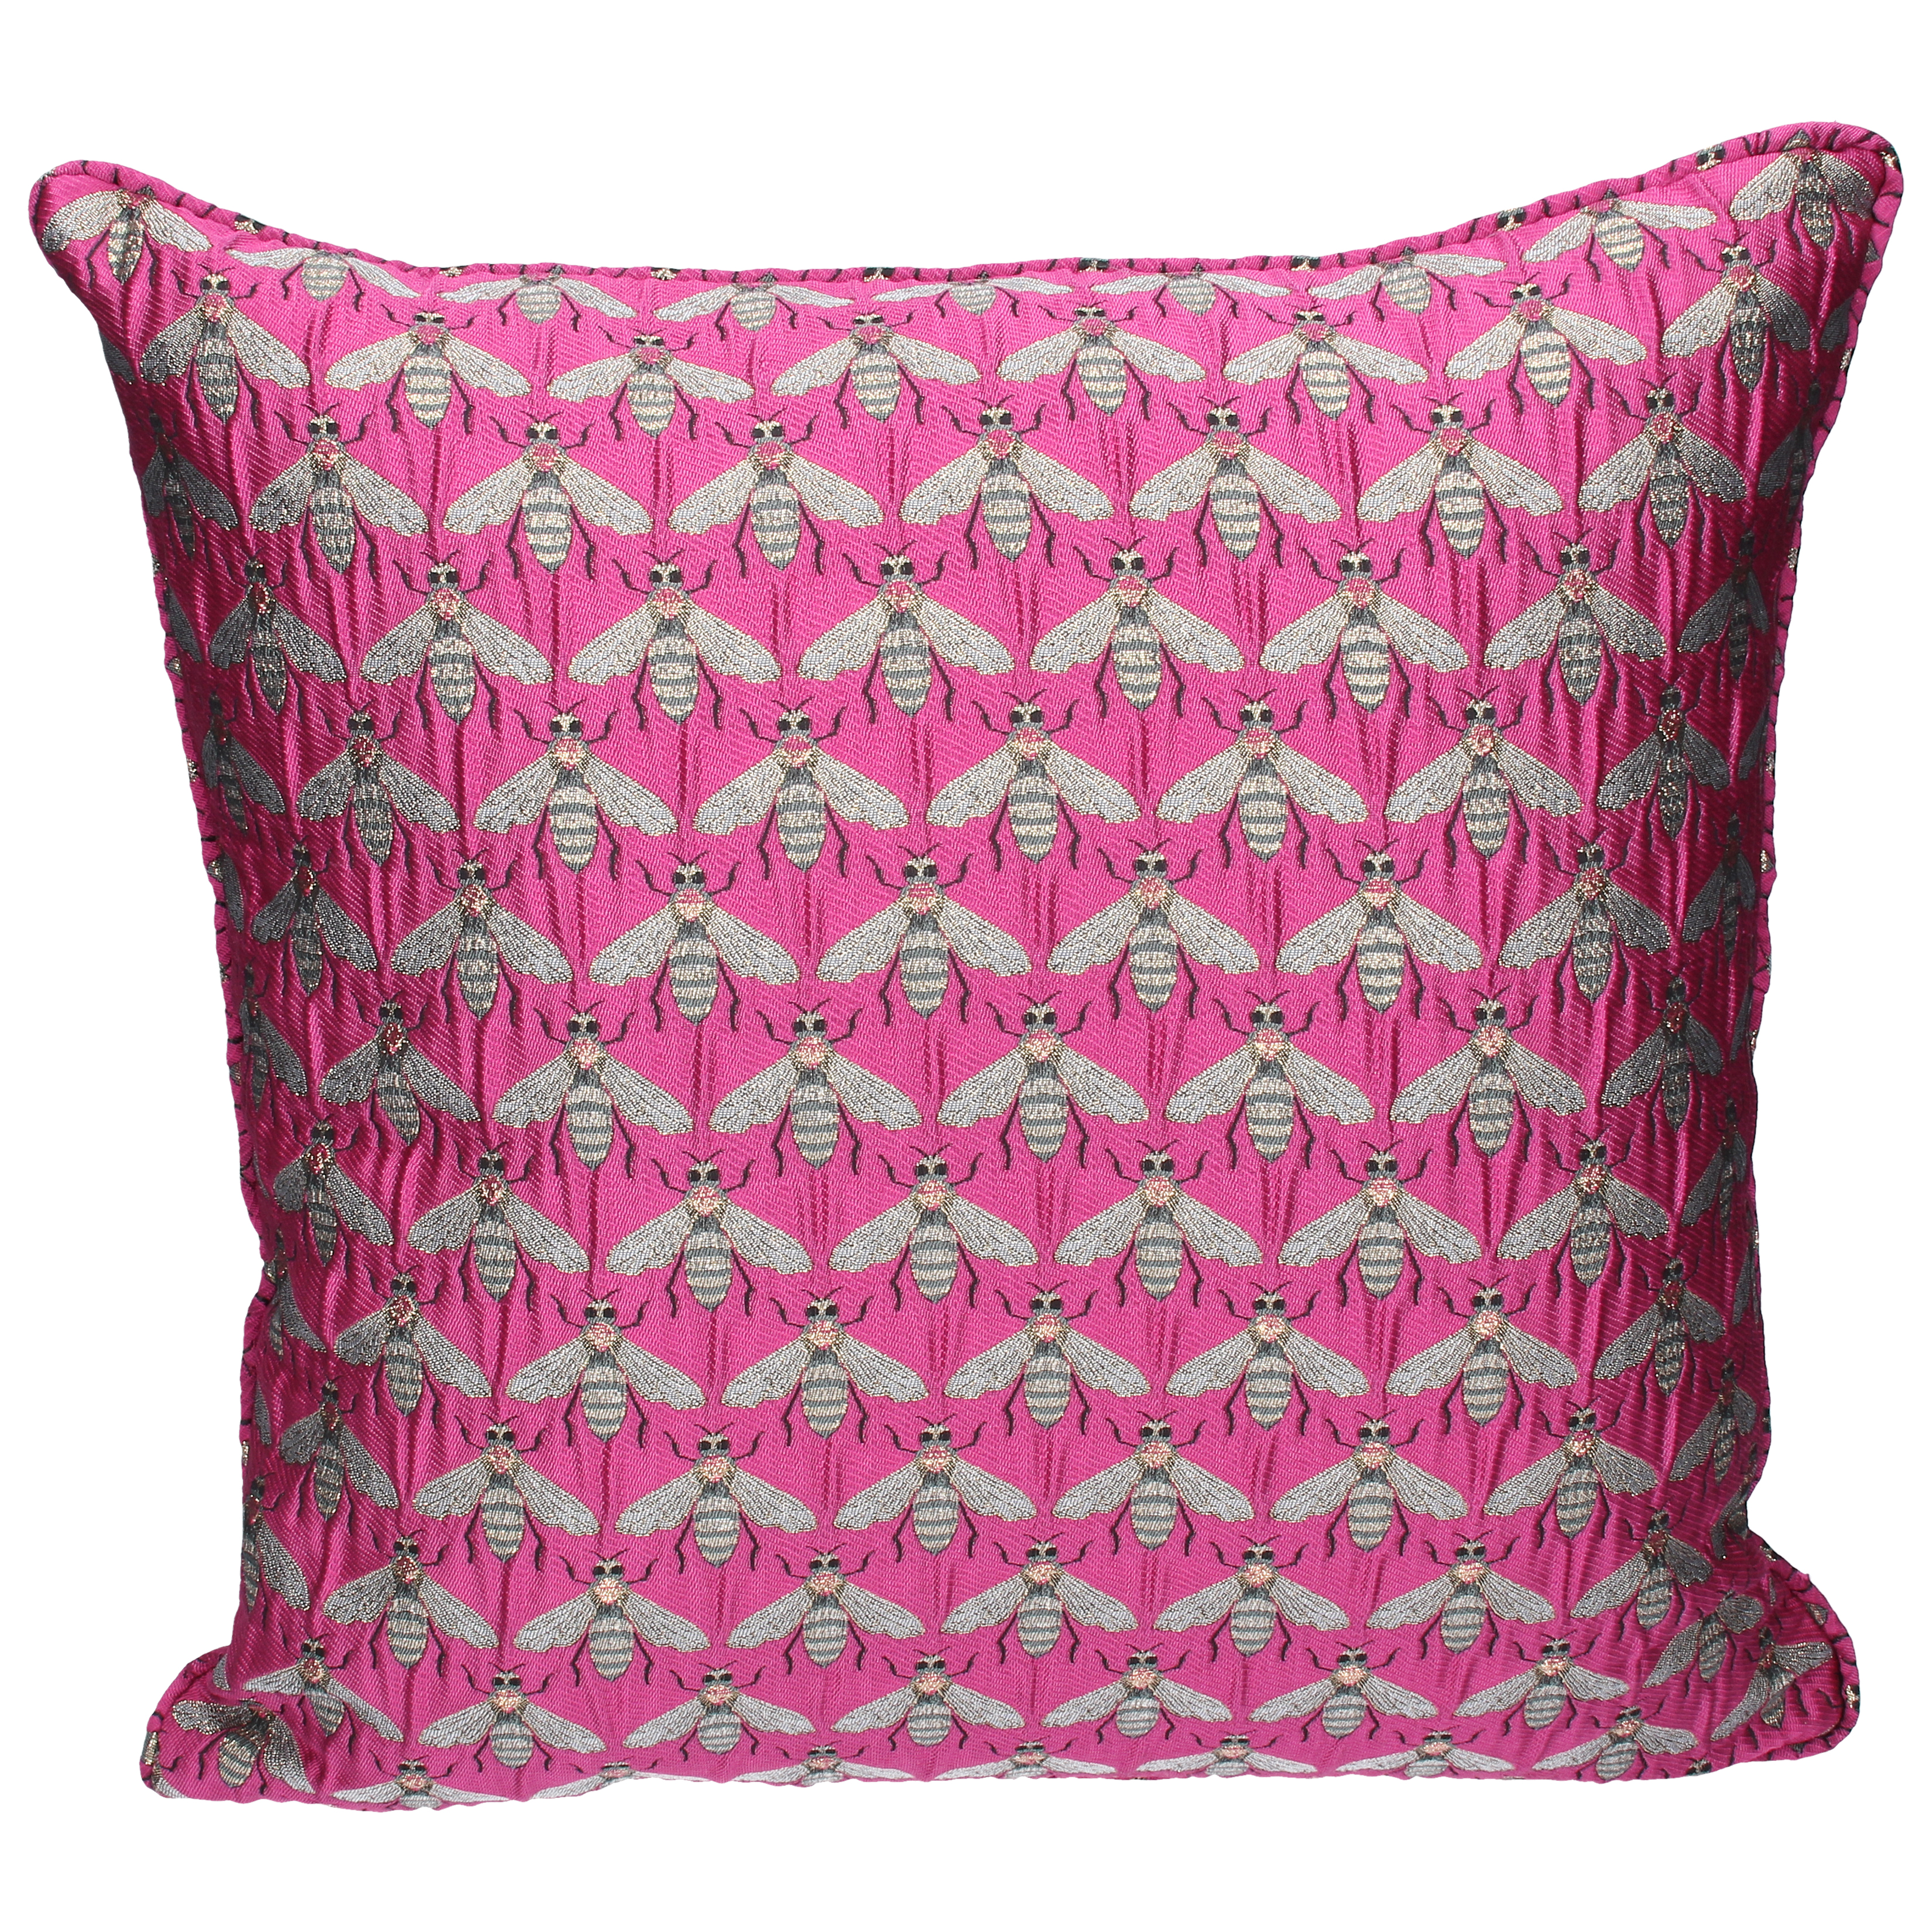 Gisela Graham Pink Bee Pillow